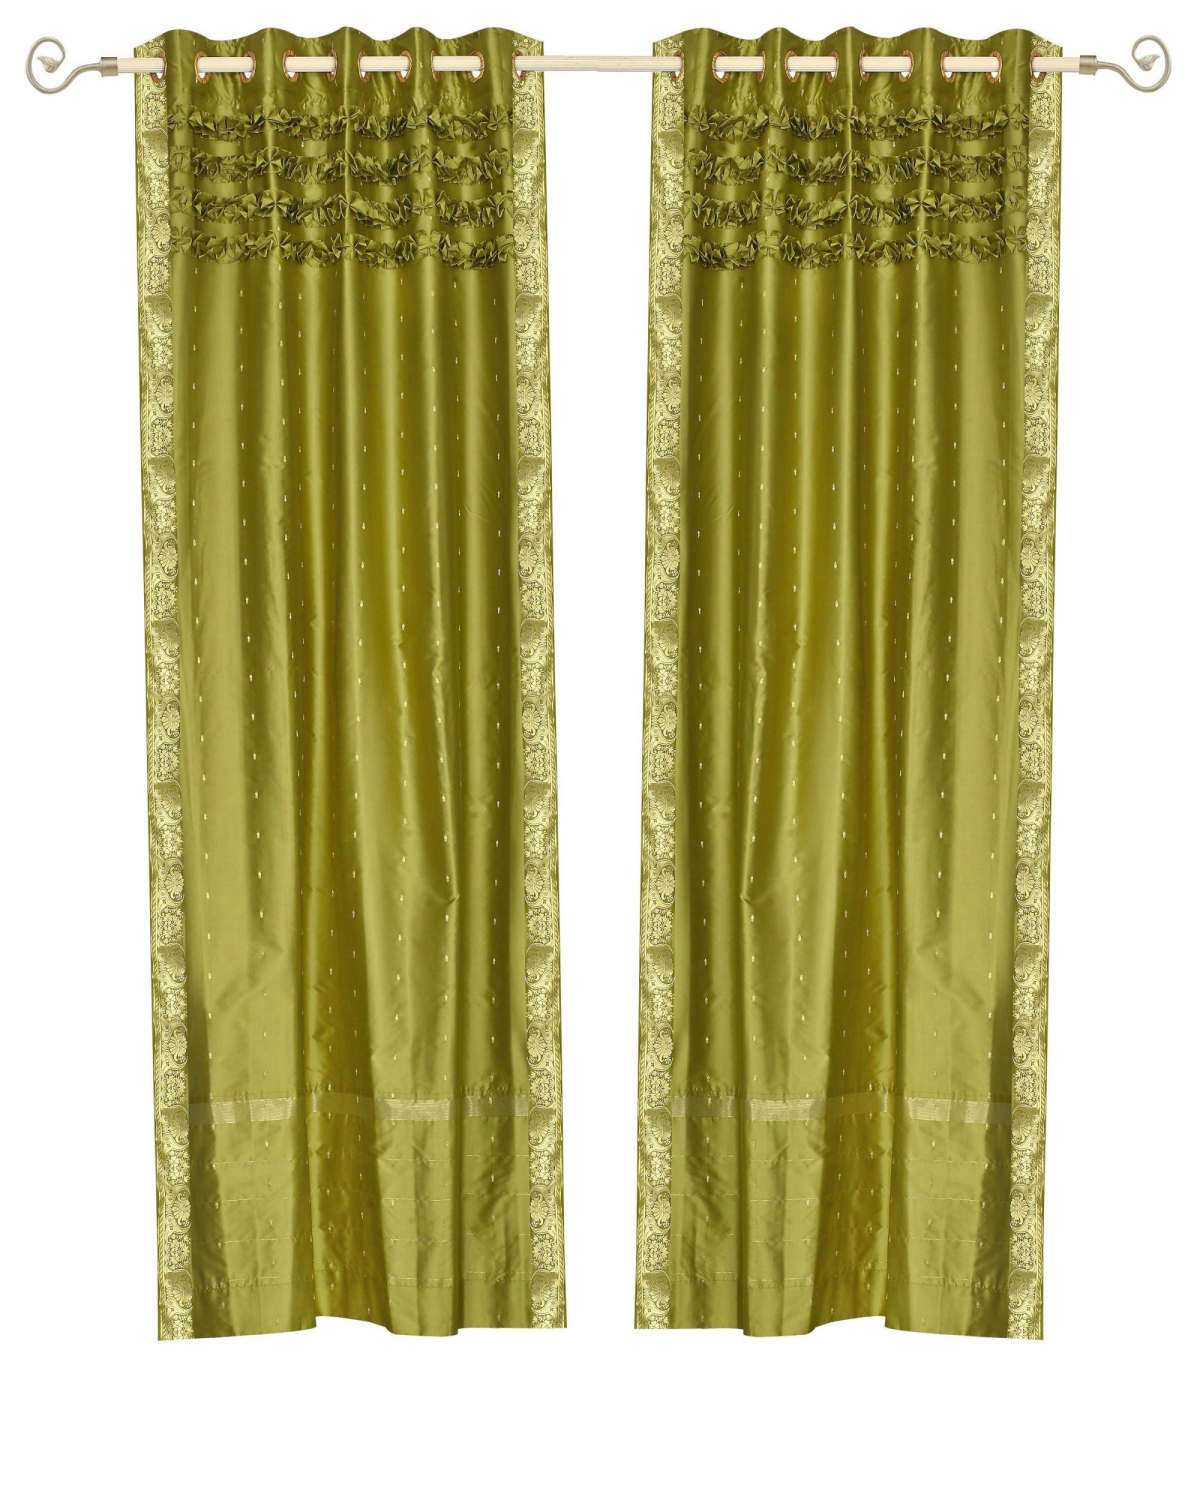 Lined-Olive Green Hand Crafted Grommet Top  Sheer Sari Curtain  Drape  Panel   - 43W x 96L - Piece